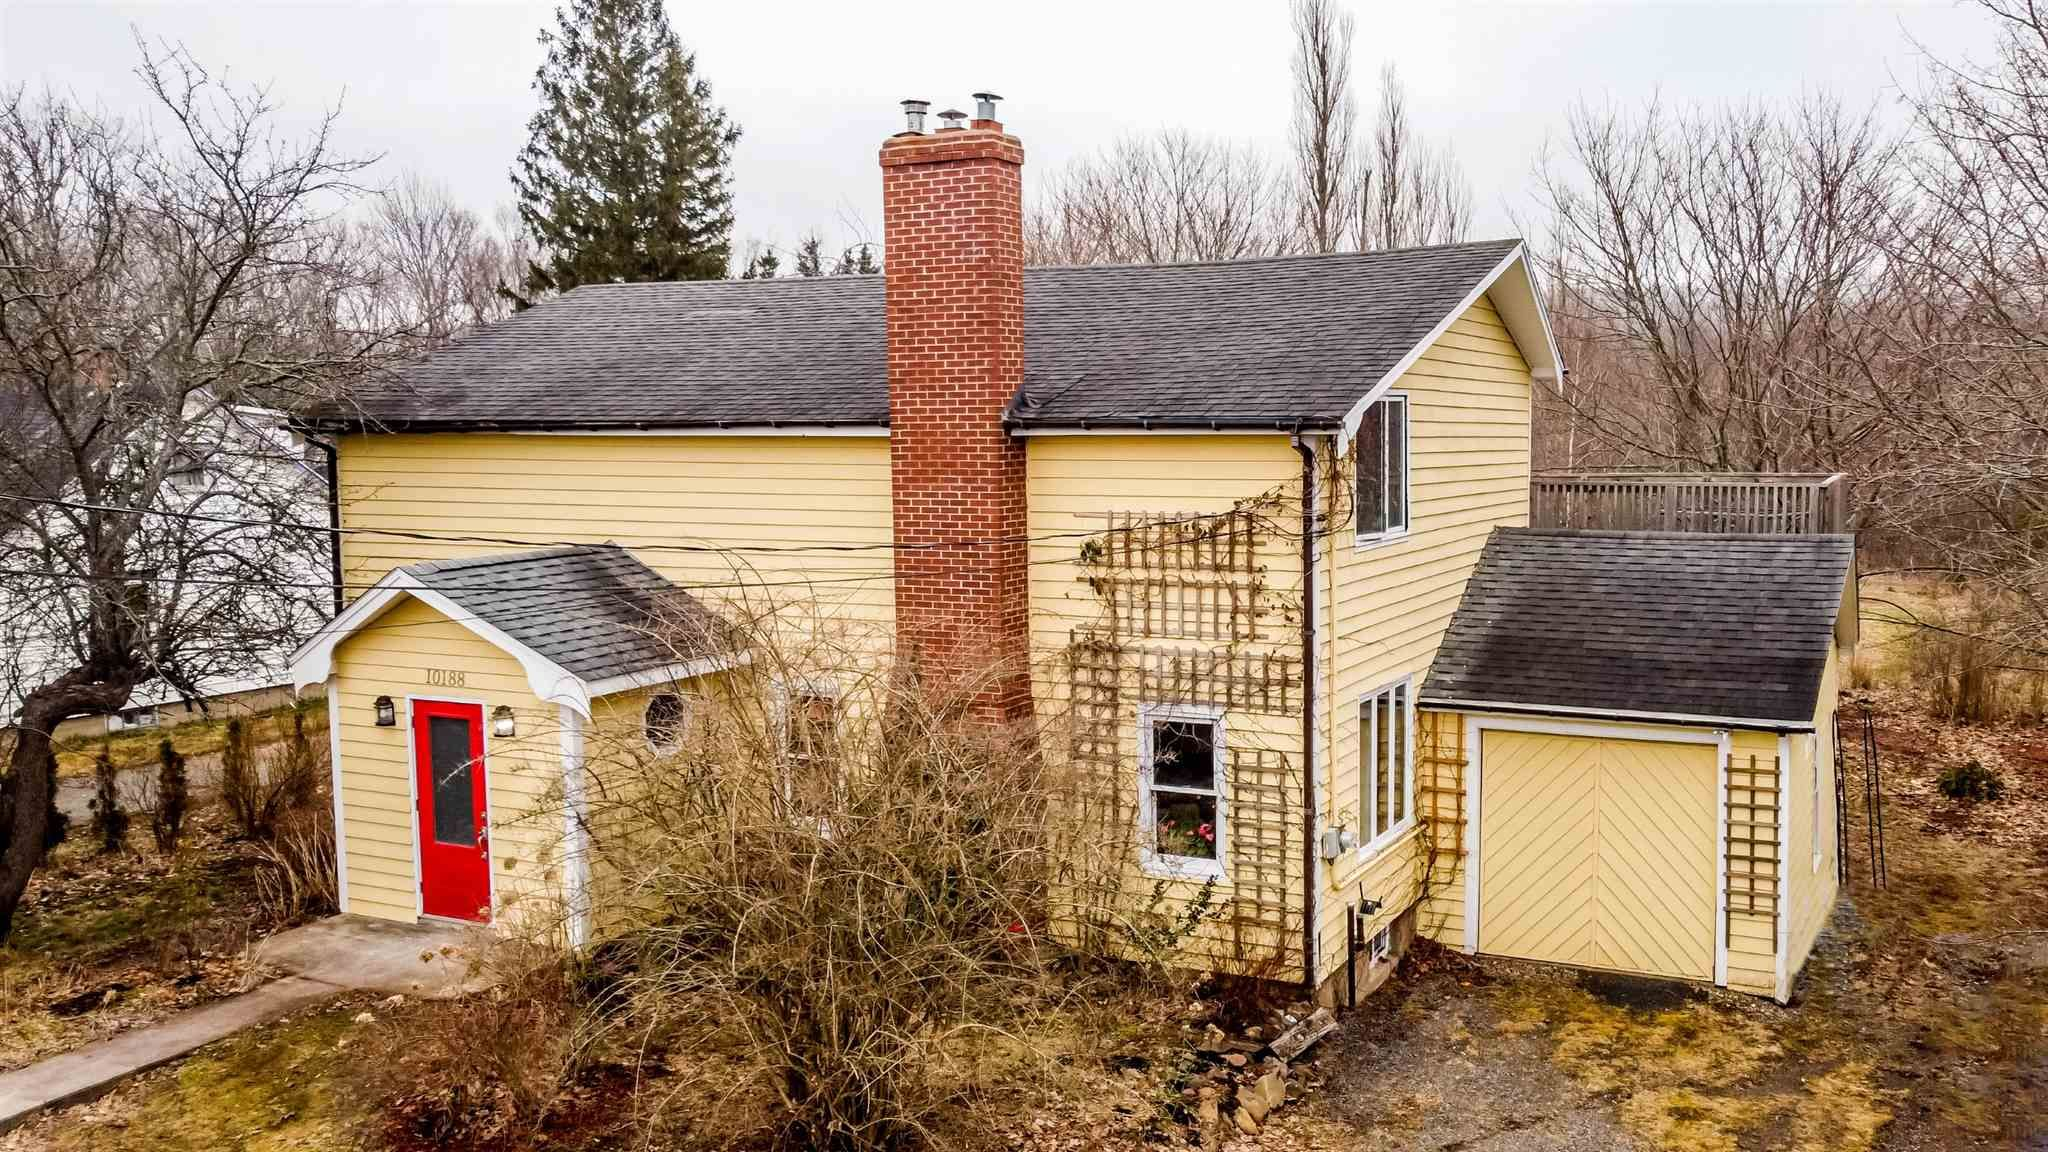 Main Photo: 10188 Highway 1 in Greenwich: 404-Kings County Residential for sale (Annapolis Valley)  : MLS®# 202106813